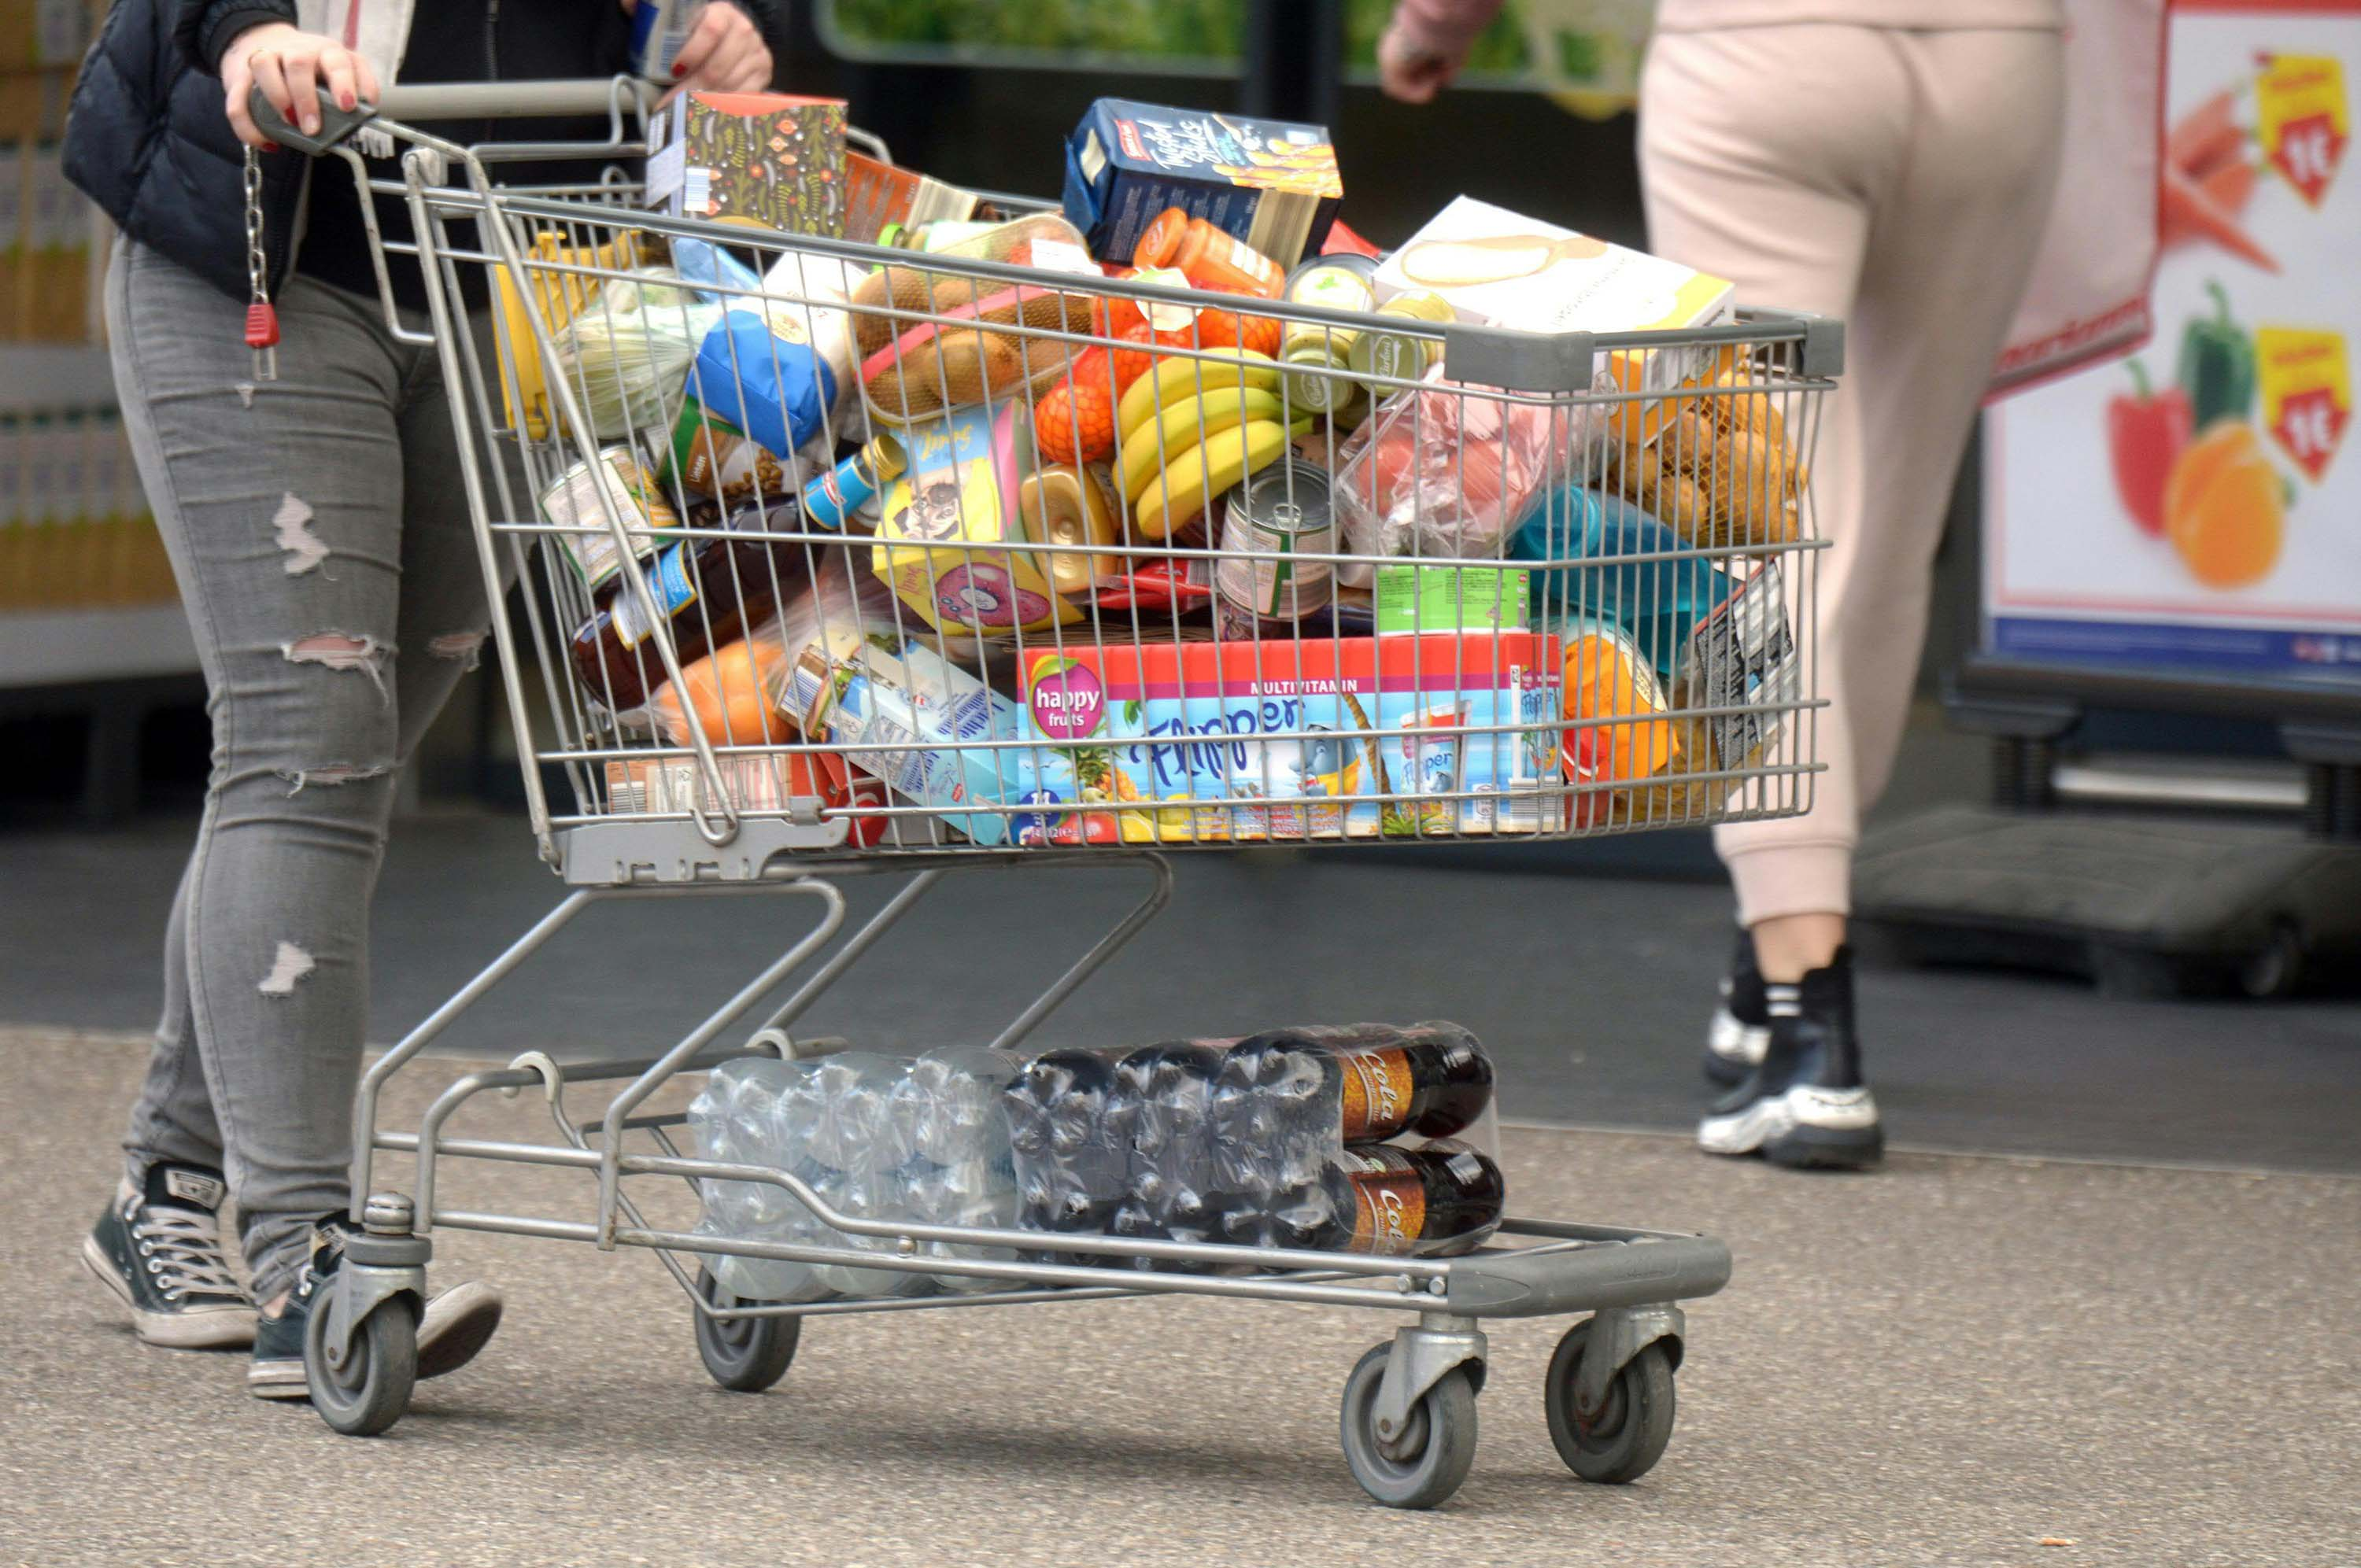 A person pushes a shopping cart with groceries in Stockerau, Austria on March 13.